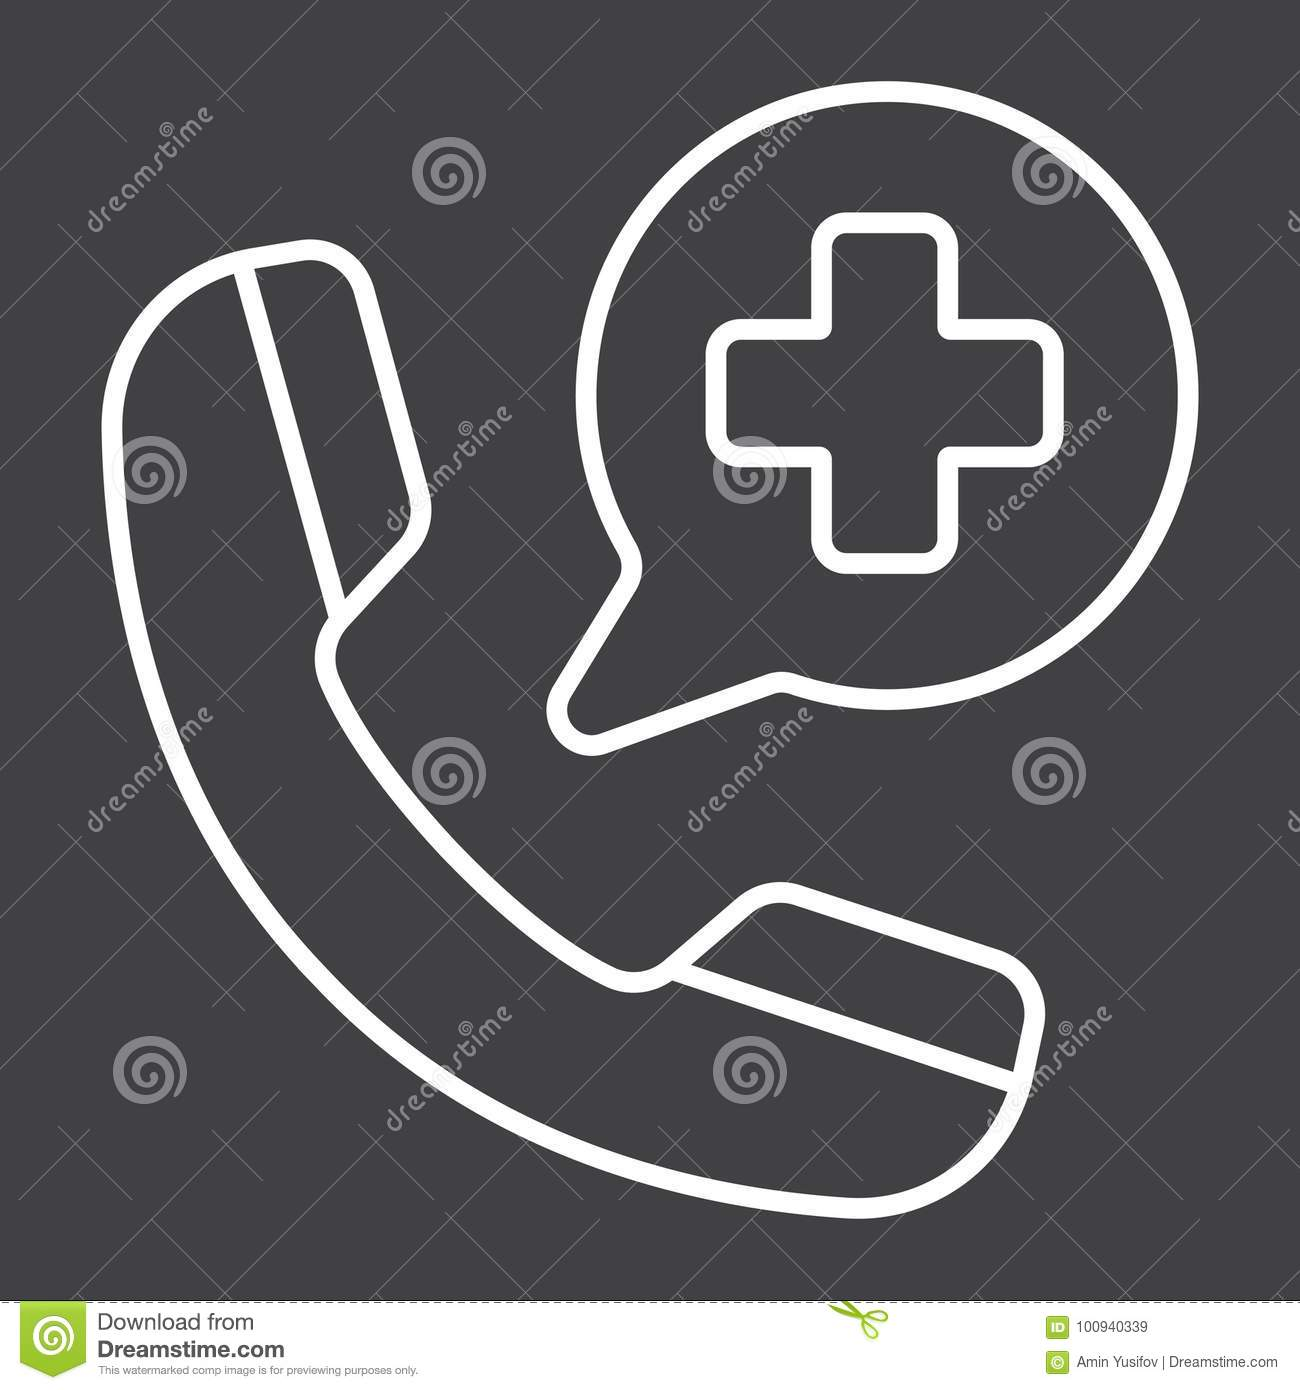 Emergency Call Line Icon, Medicine And Healthcare Stock